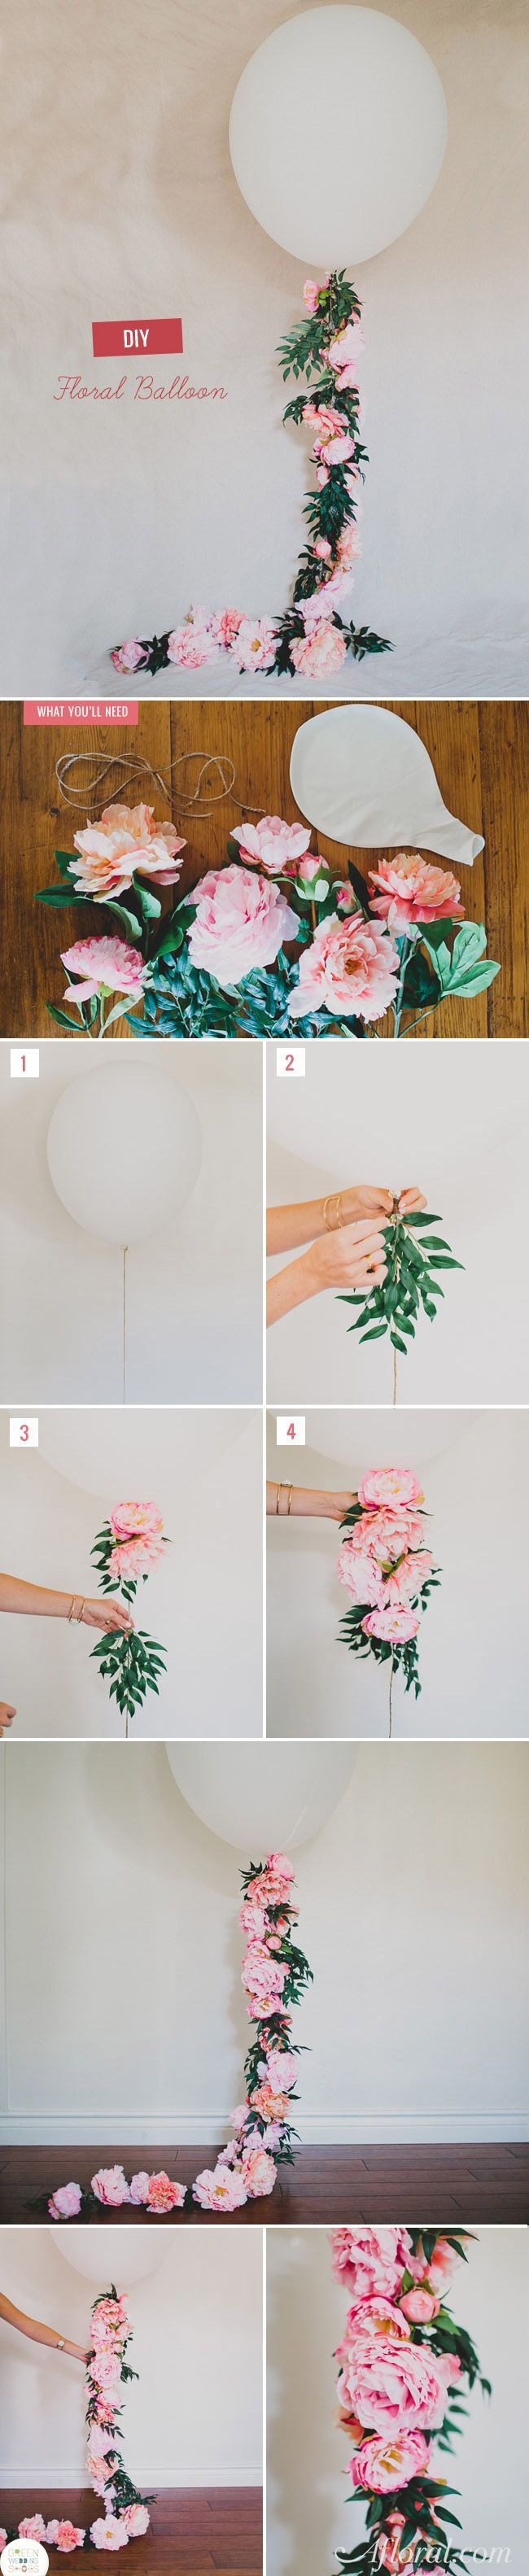 Discover thousands of images about Adorable Floral Balloon Decoration